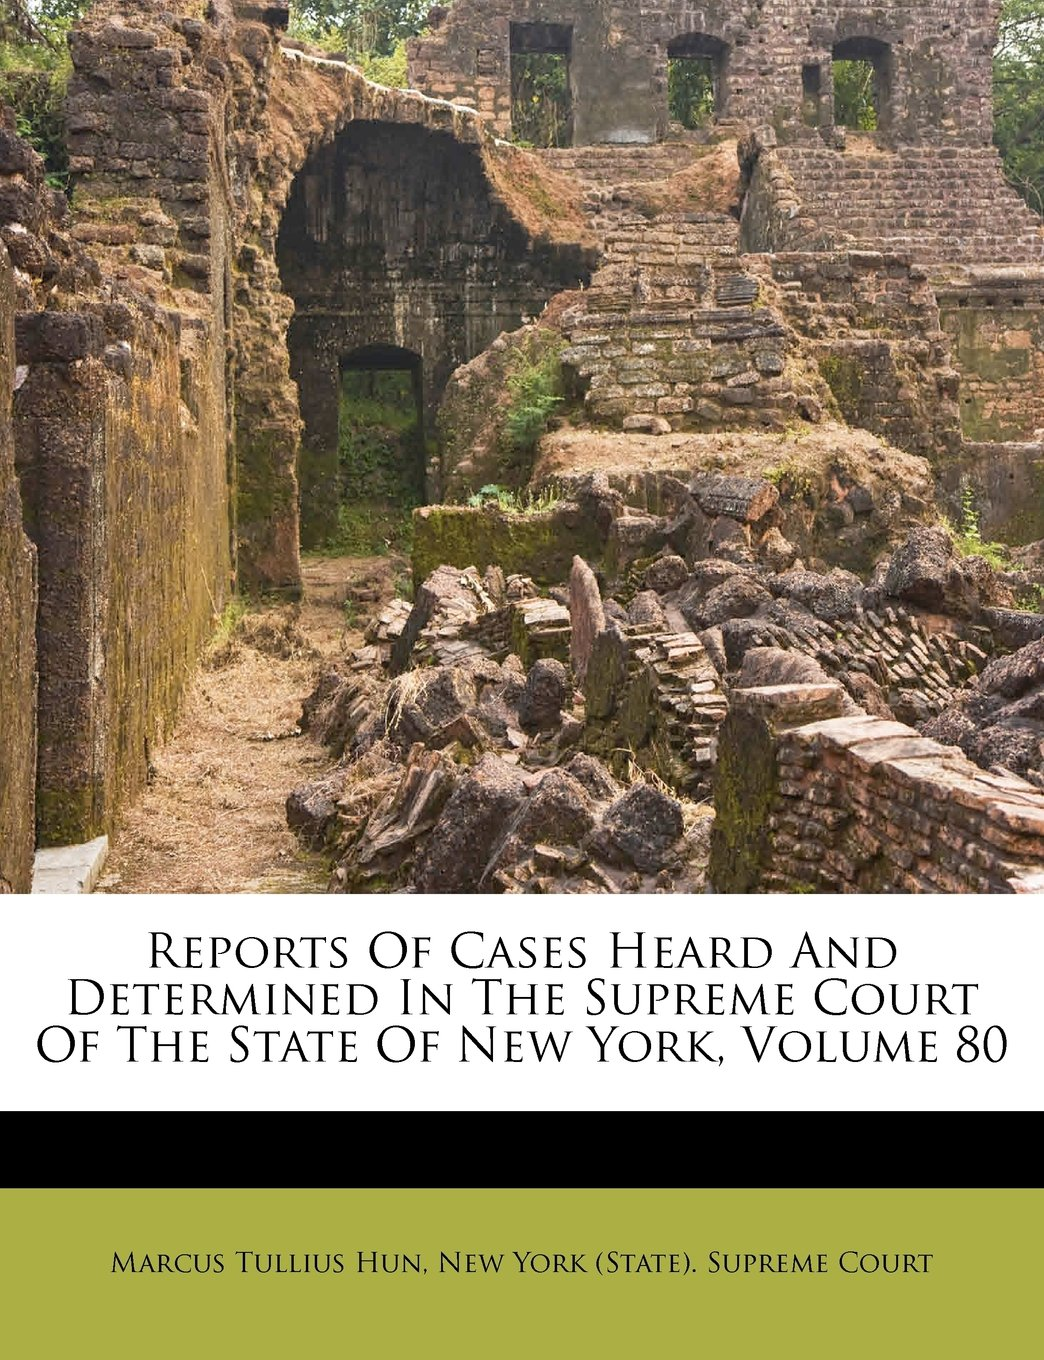 Download Reports Of Cases Heard And Determined In The Supreme Court Of The State Of New York, Volume 80 PDF